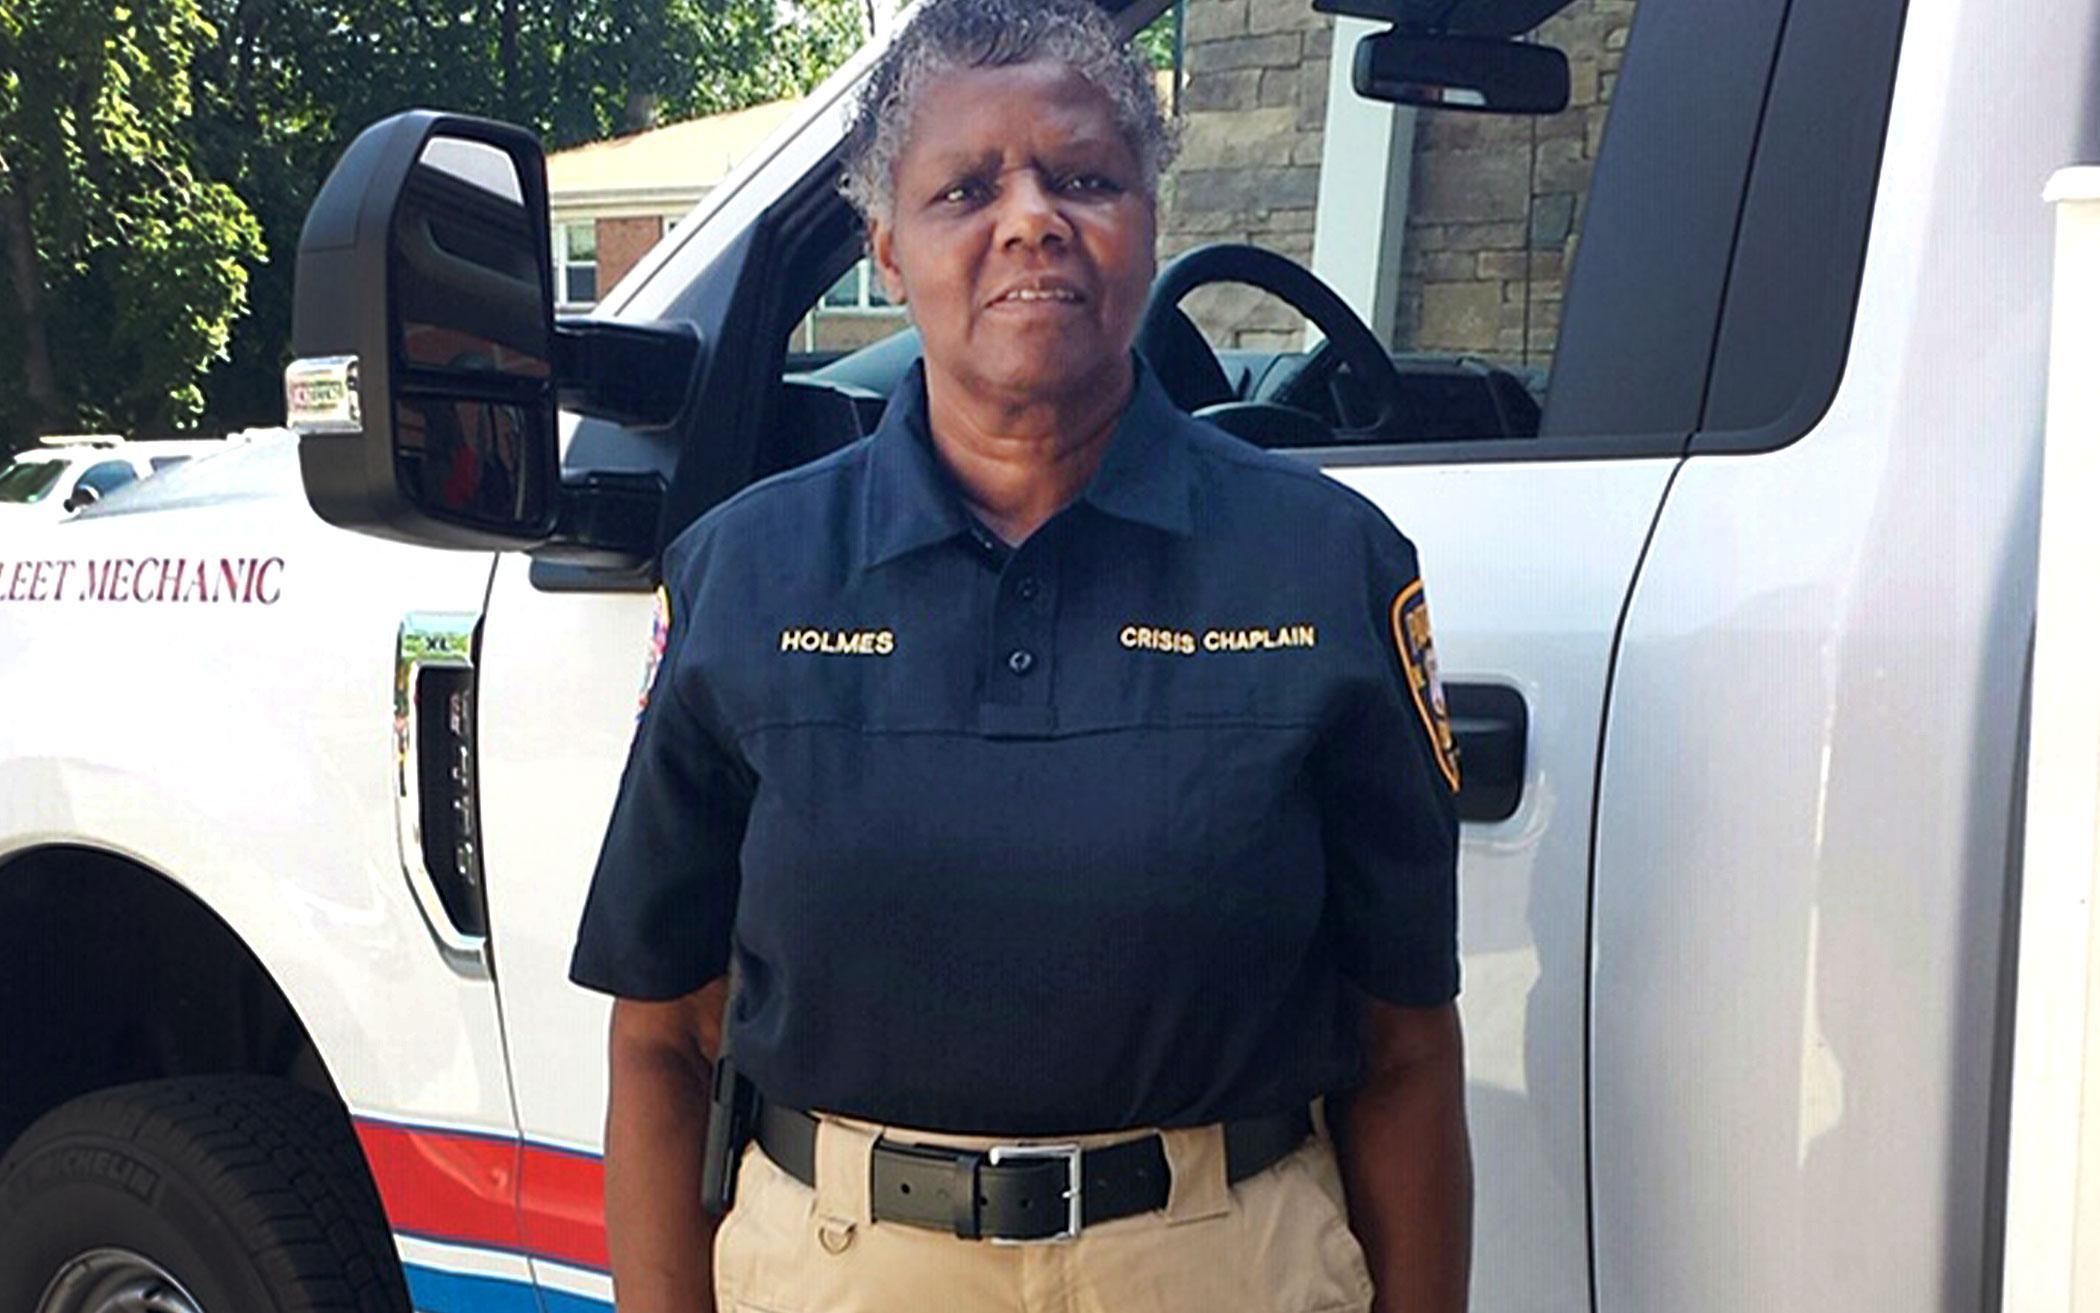 Rev. Sheila Holmes, Crisis Intervention Chaplain with the Paterson Police force.